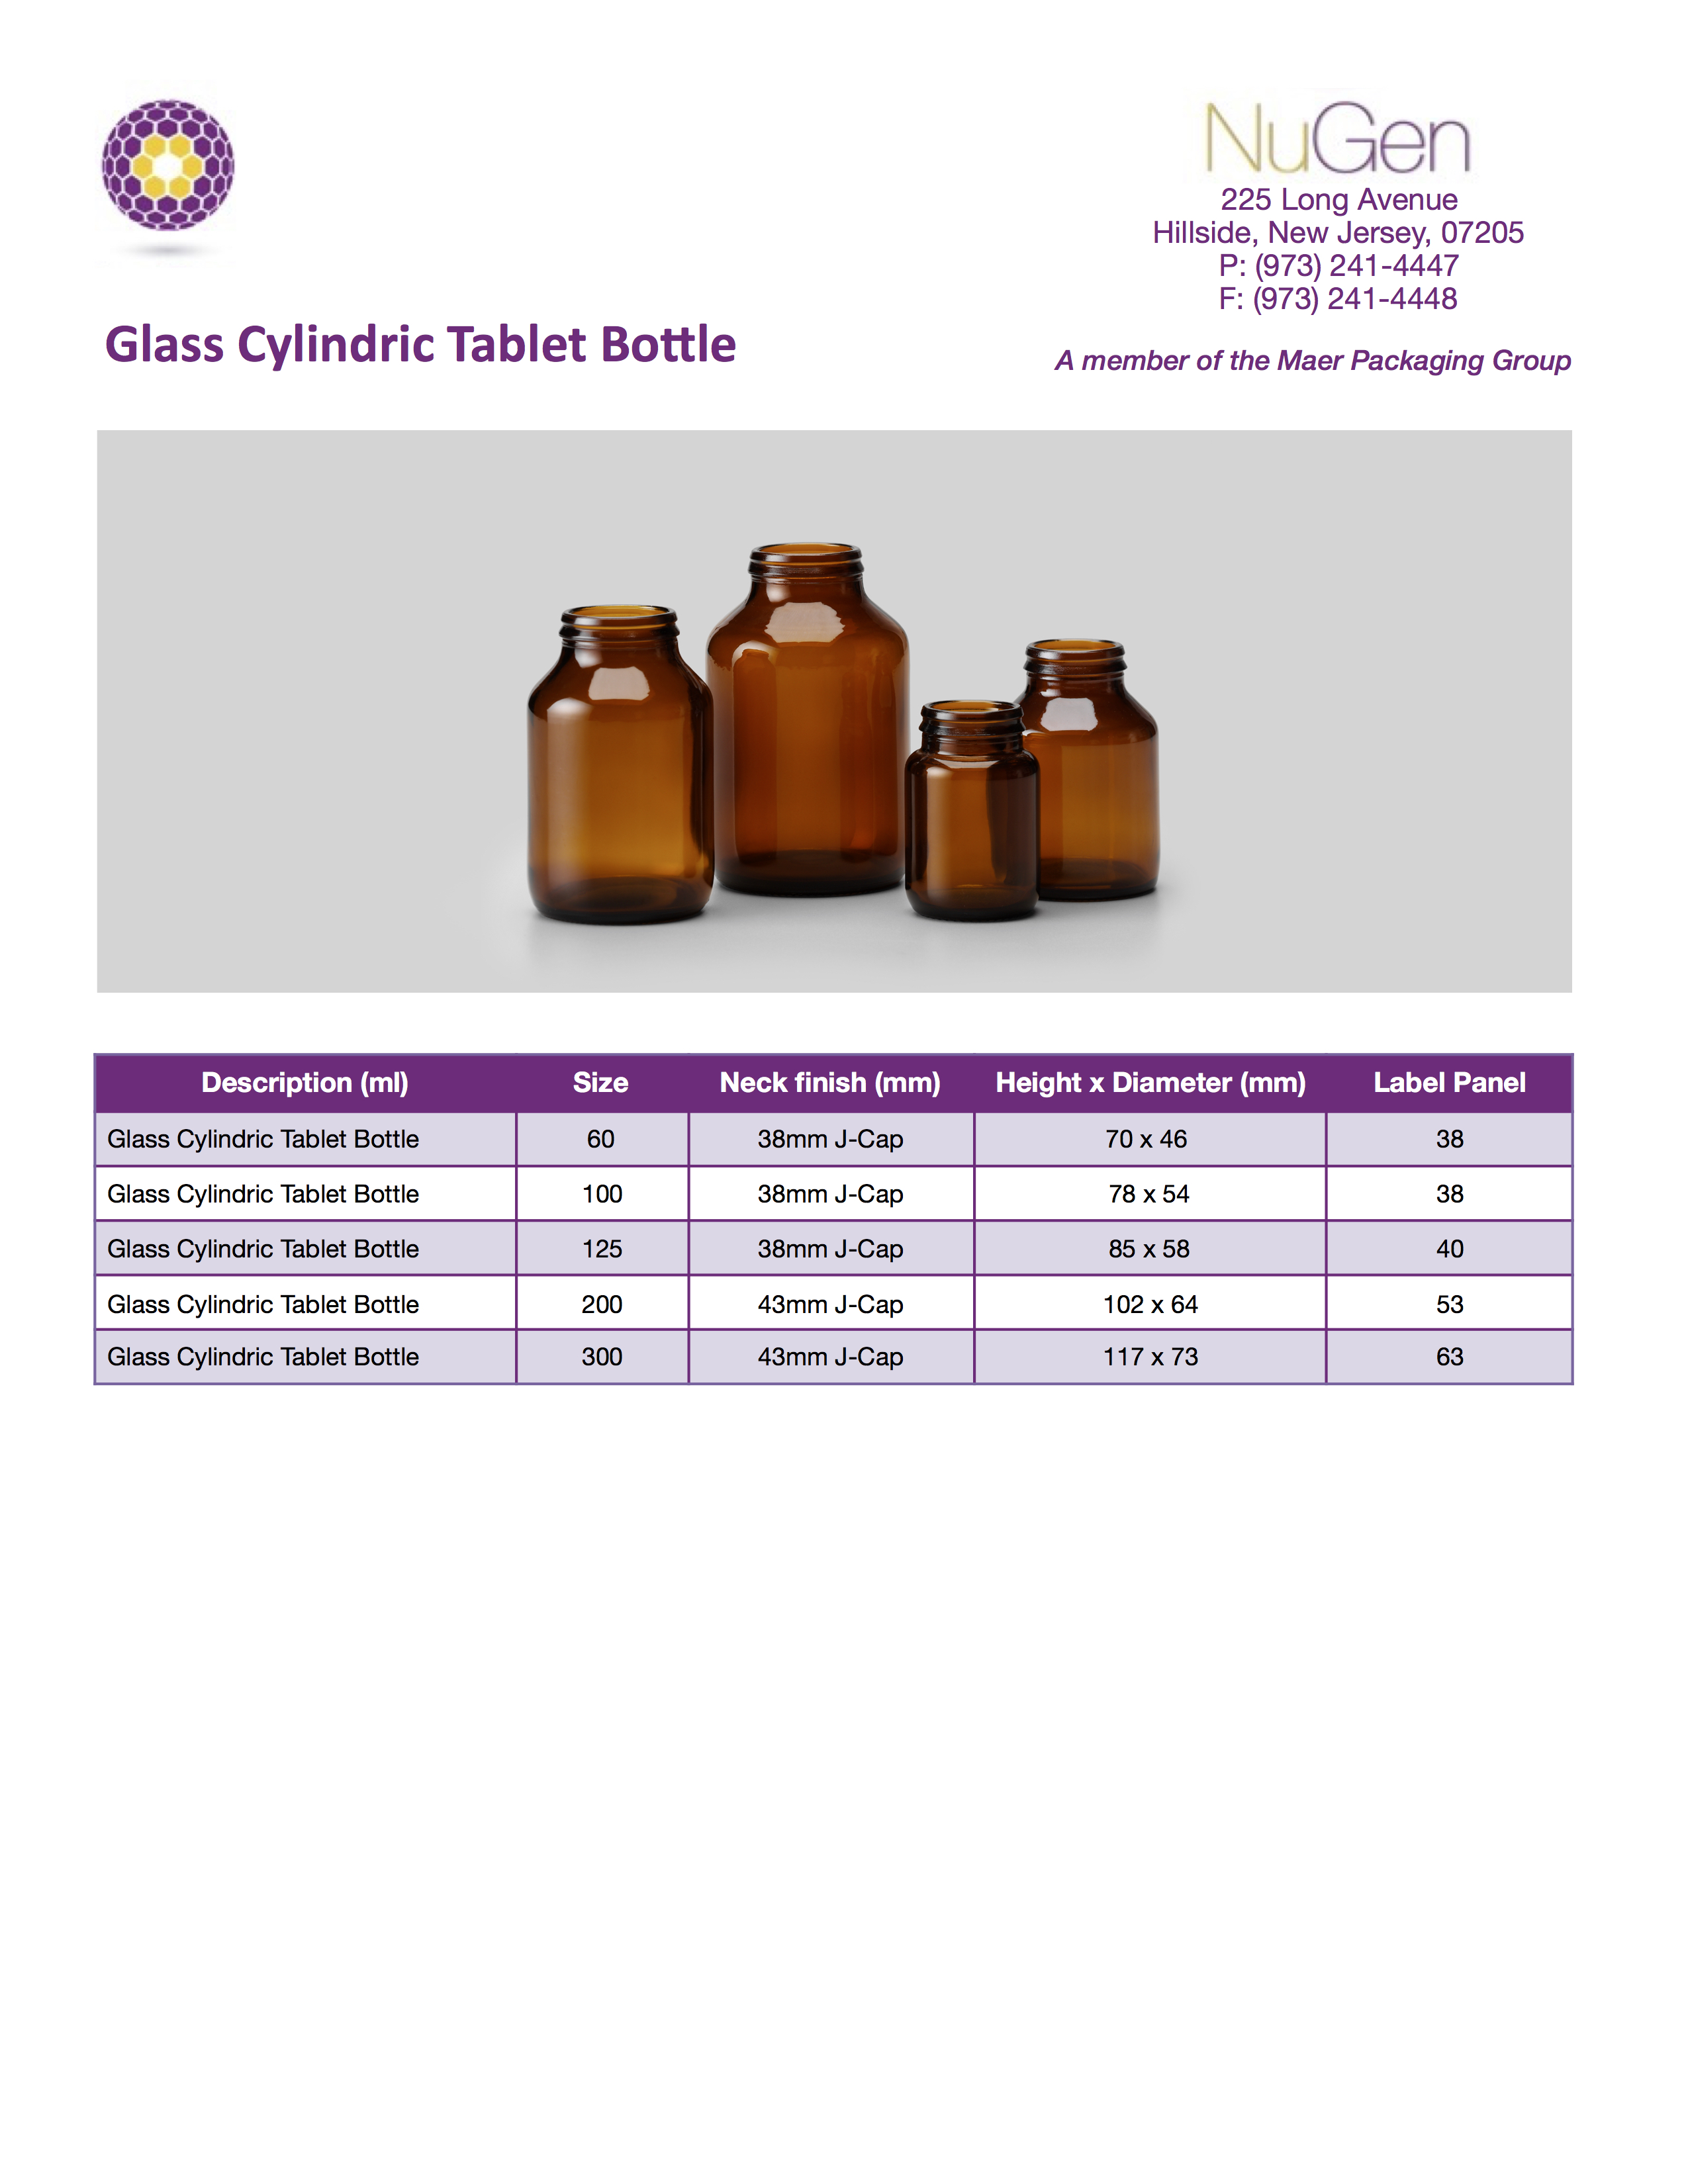 Glass Cylindric Tablet Bottle-5-4-2016.jpg